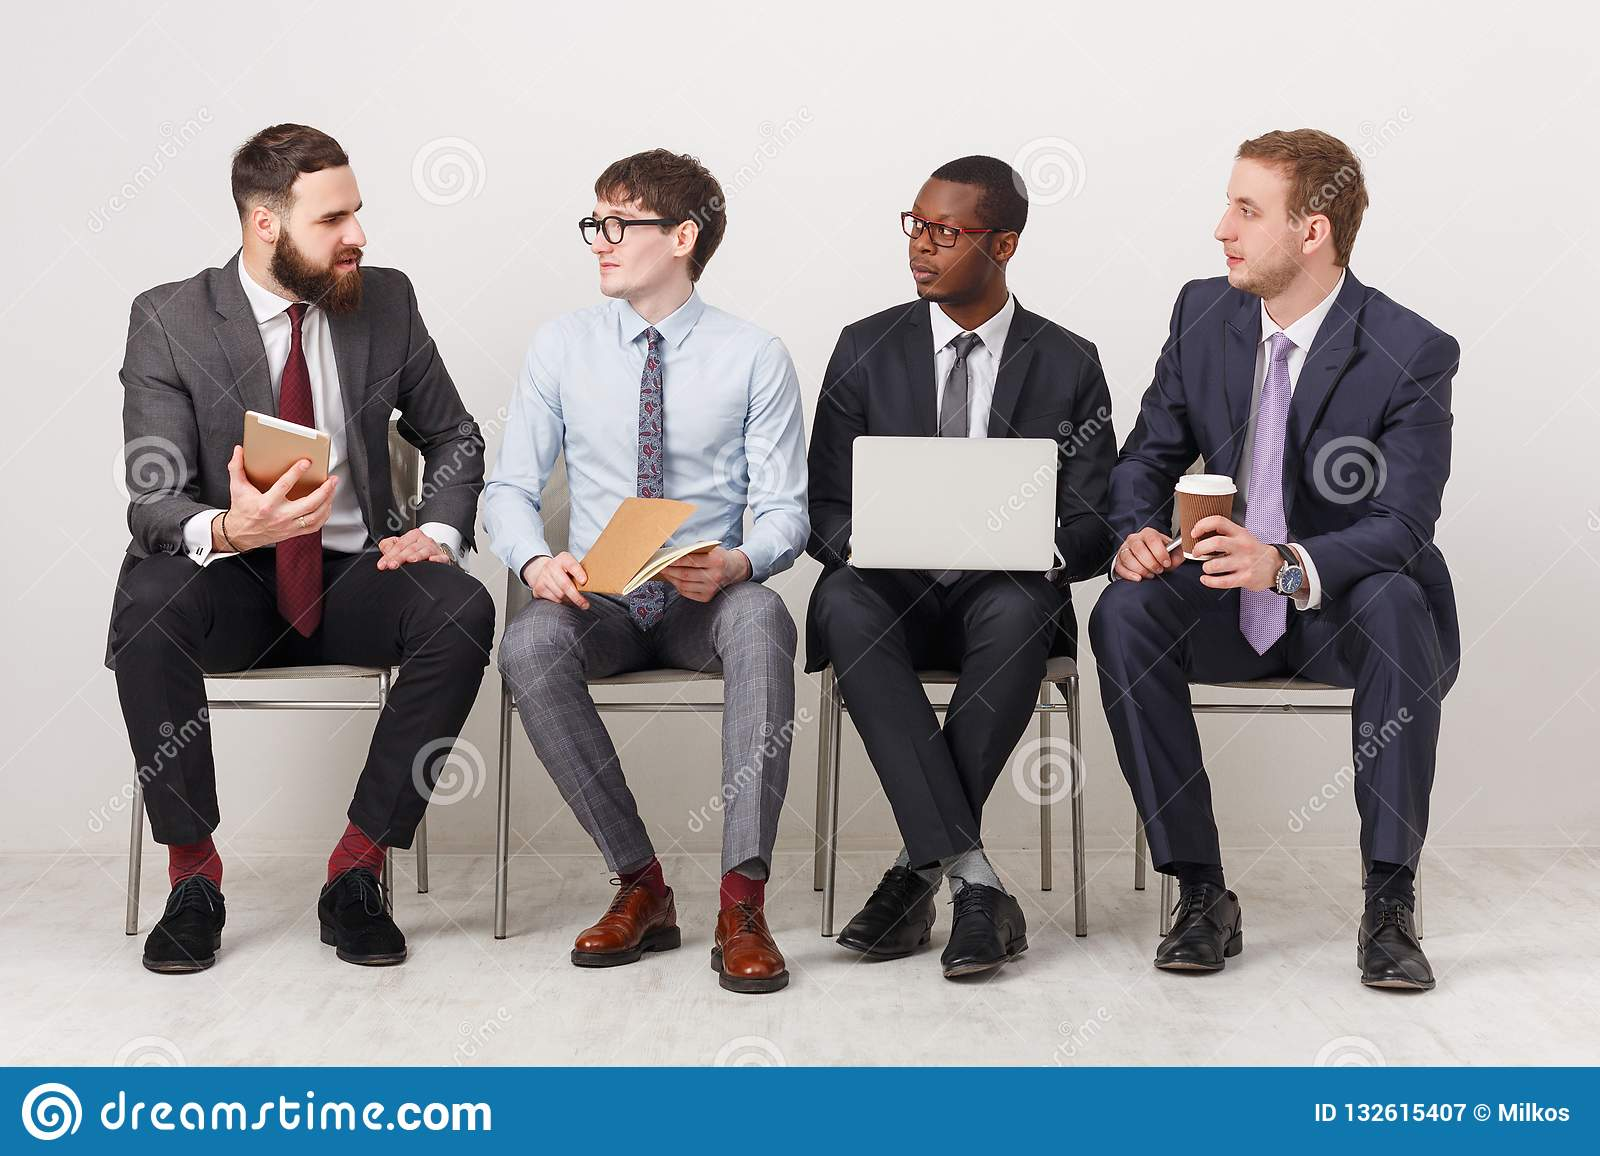 group-business-men-sitting-chairs-people-working-successful-using-gadgets-communication-modern-technologies-concept-132615407.jpg